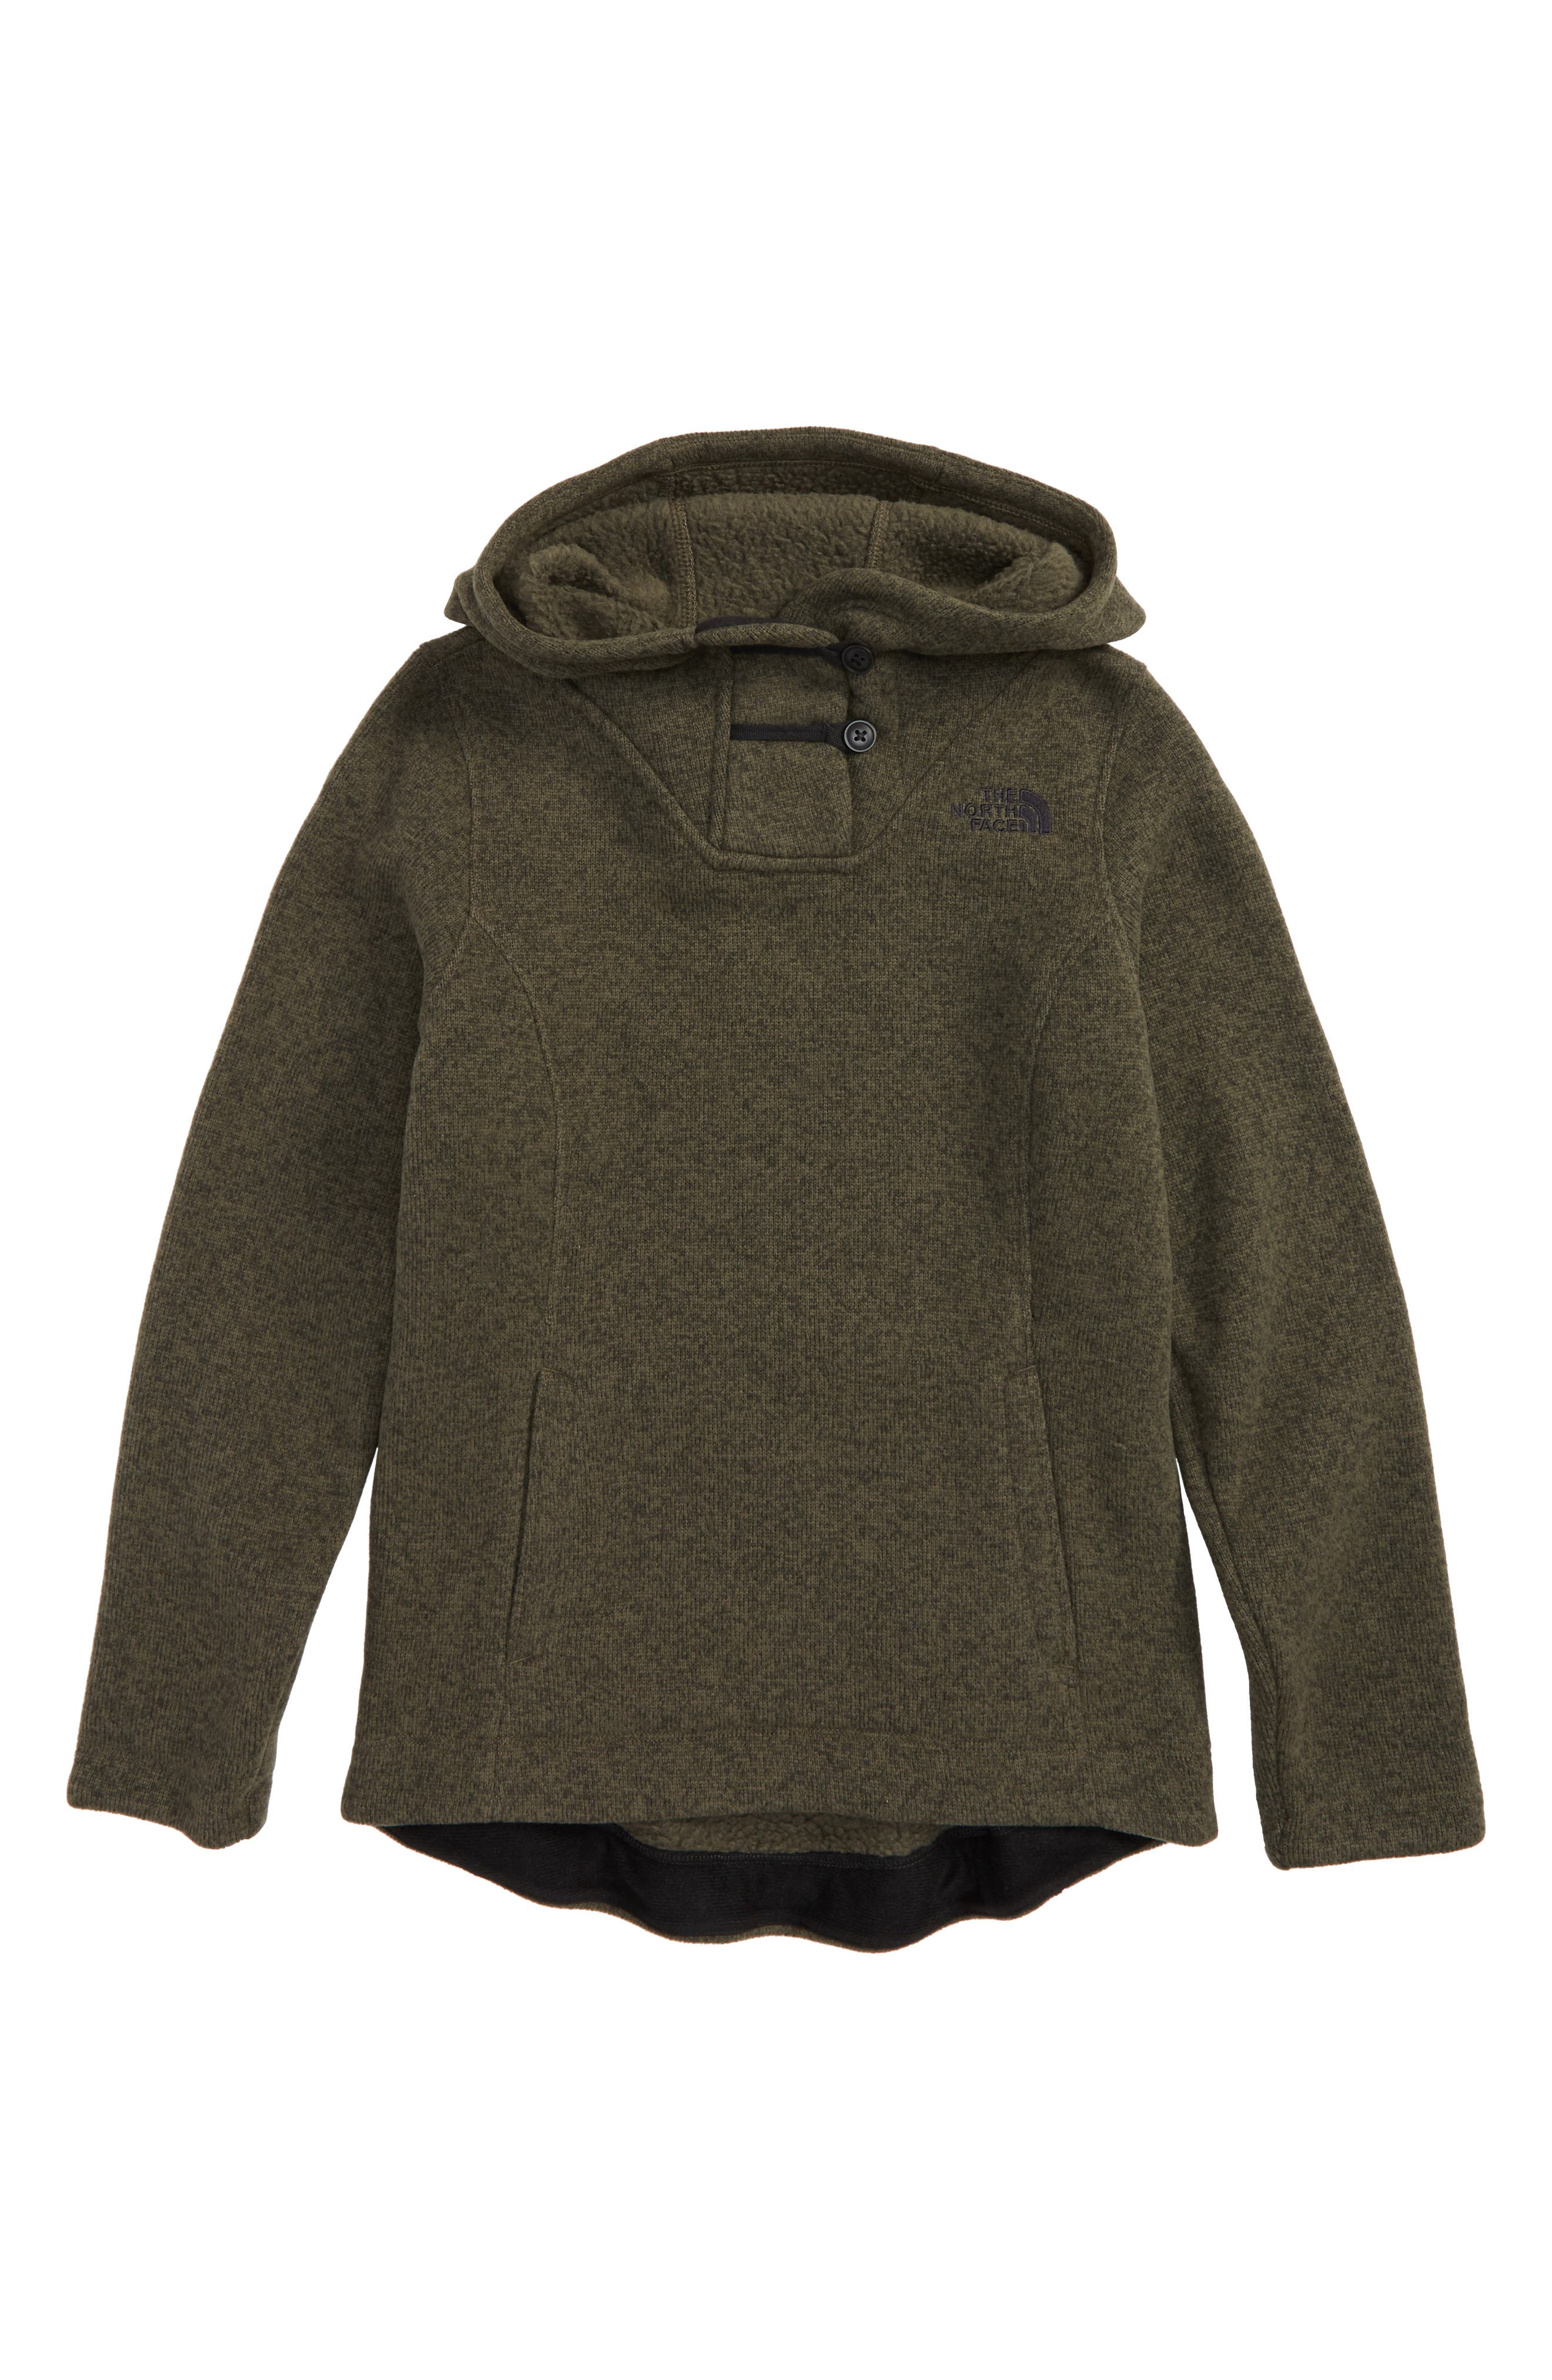 Crescent Sunset Hoodie,                         Main,                         color, 301